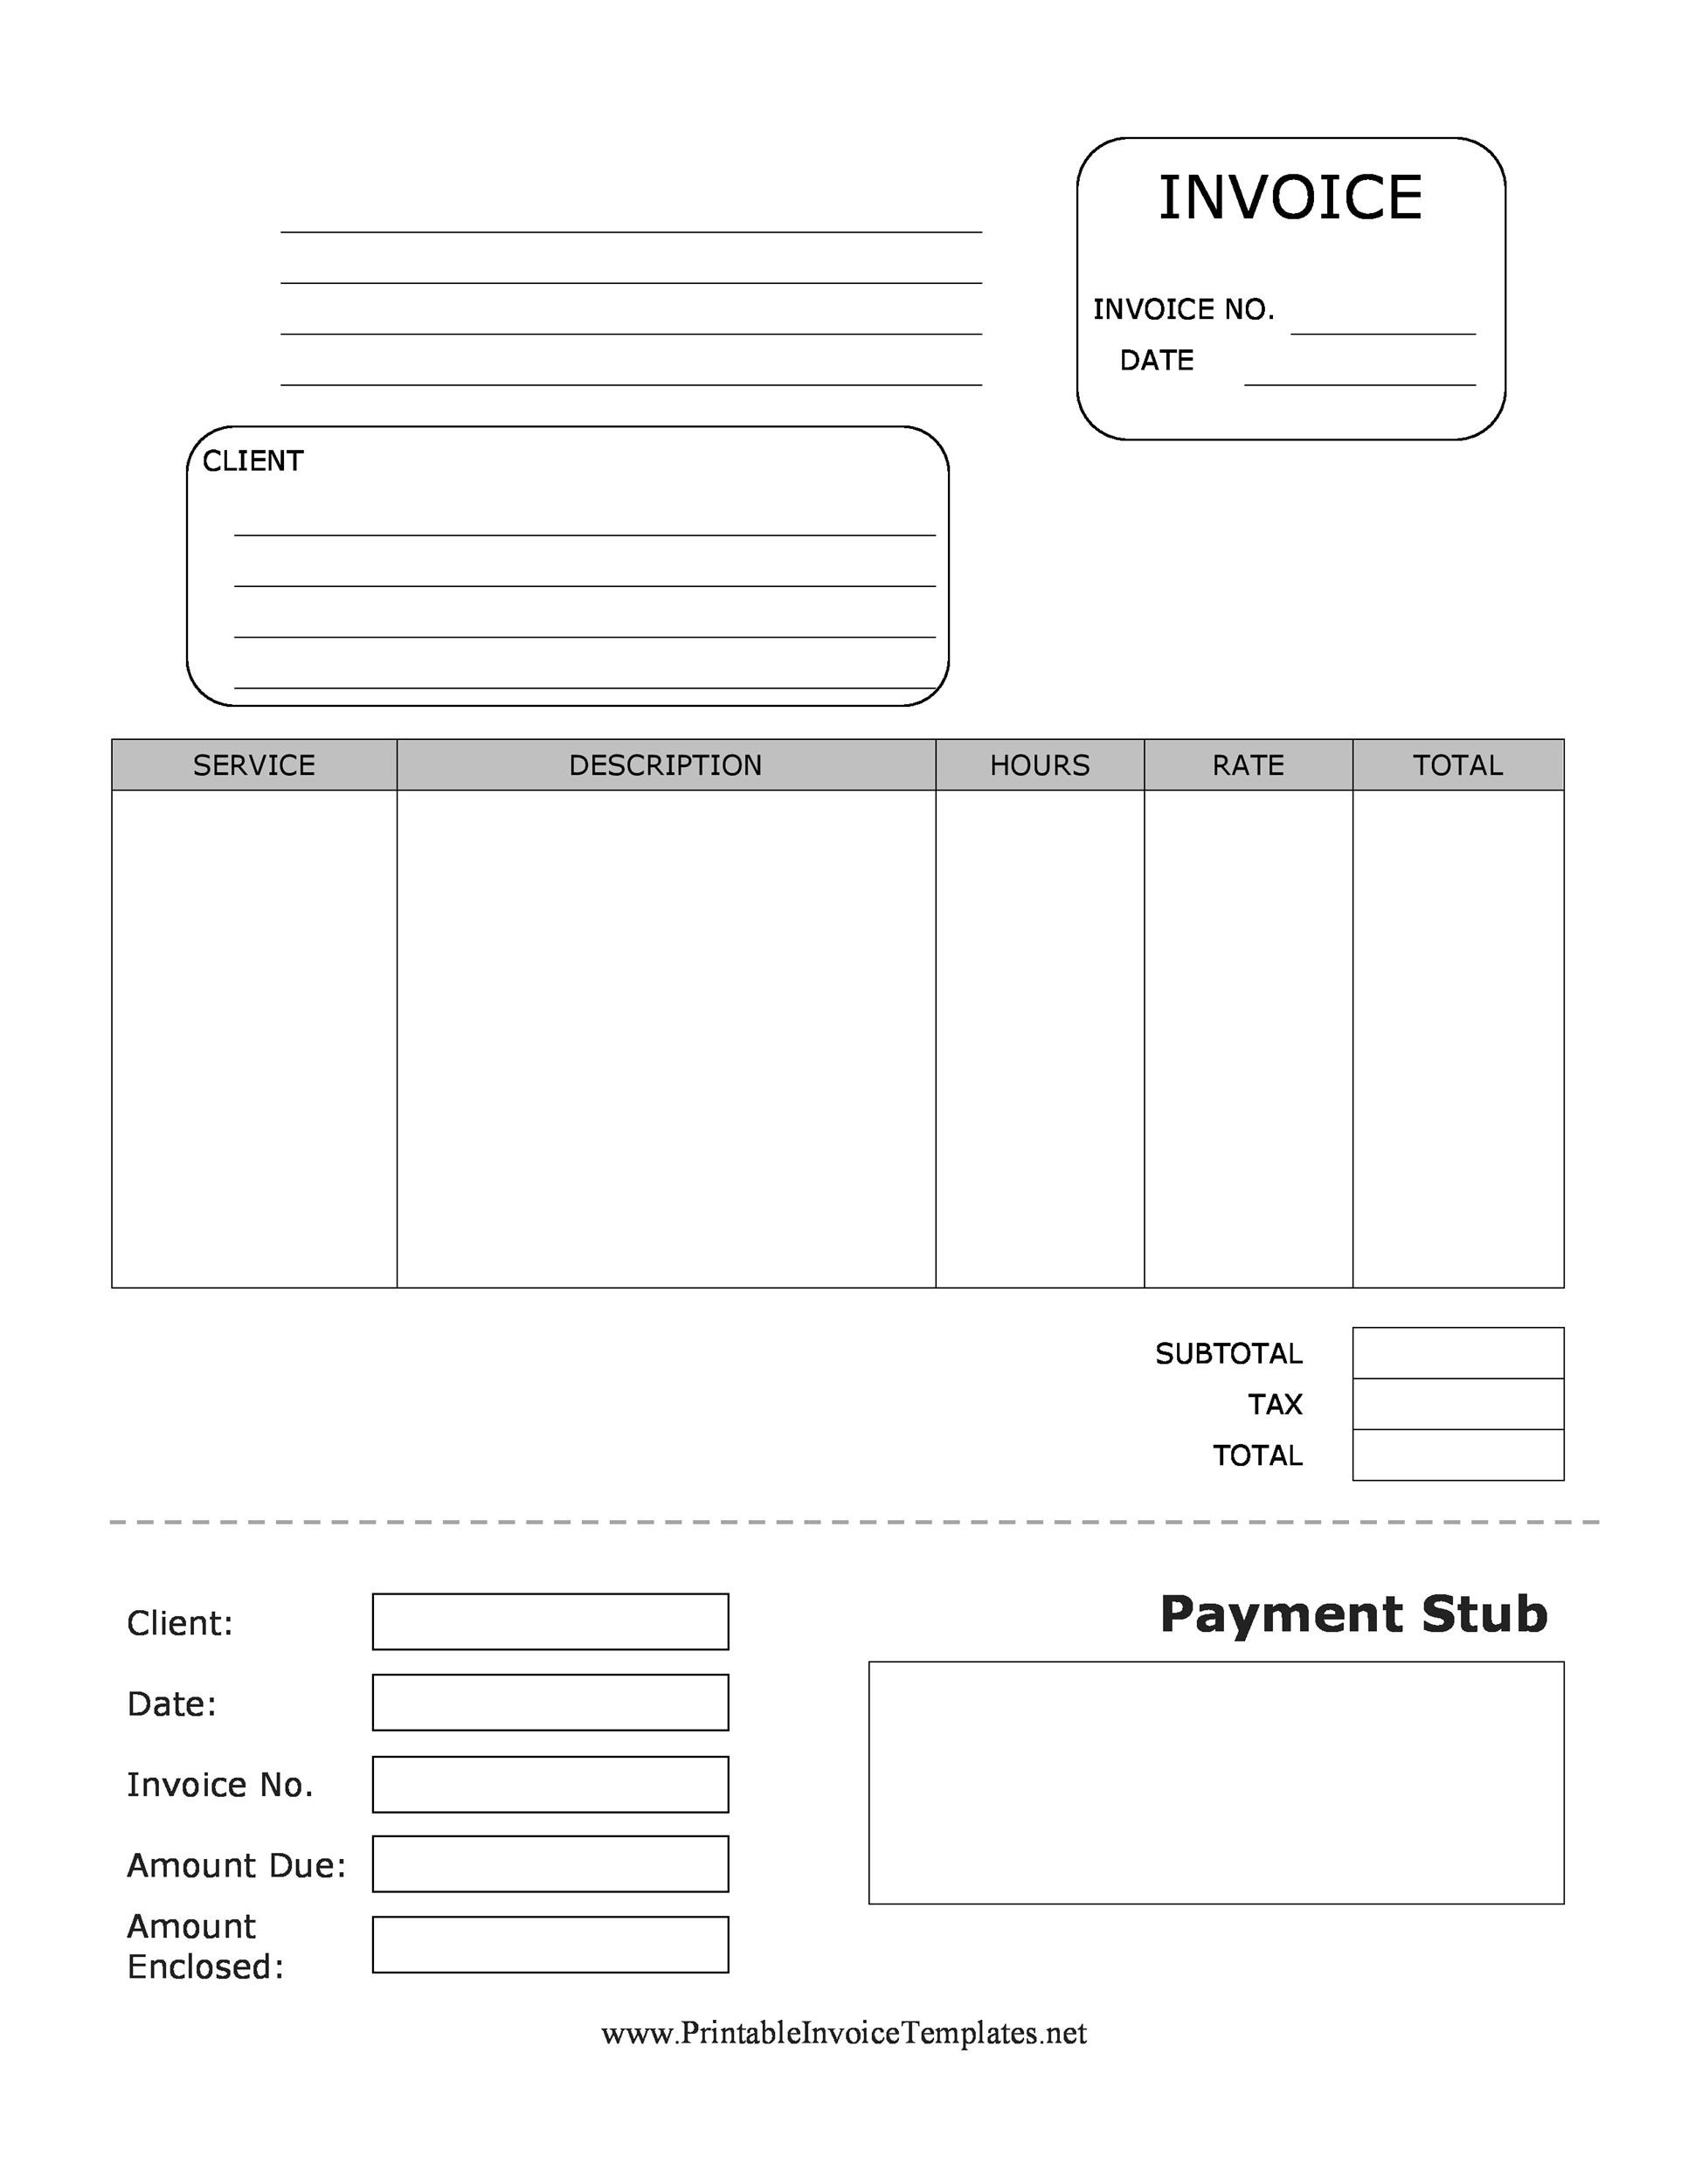 free pay stub template word 25 Great Pay Stub / Paycheck Stub Templates